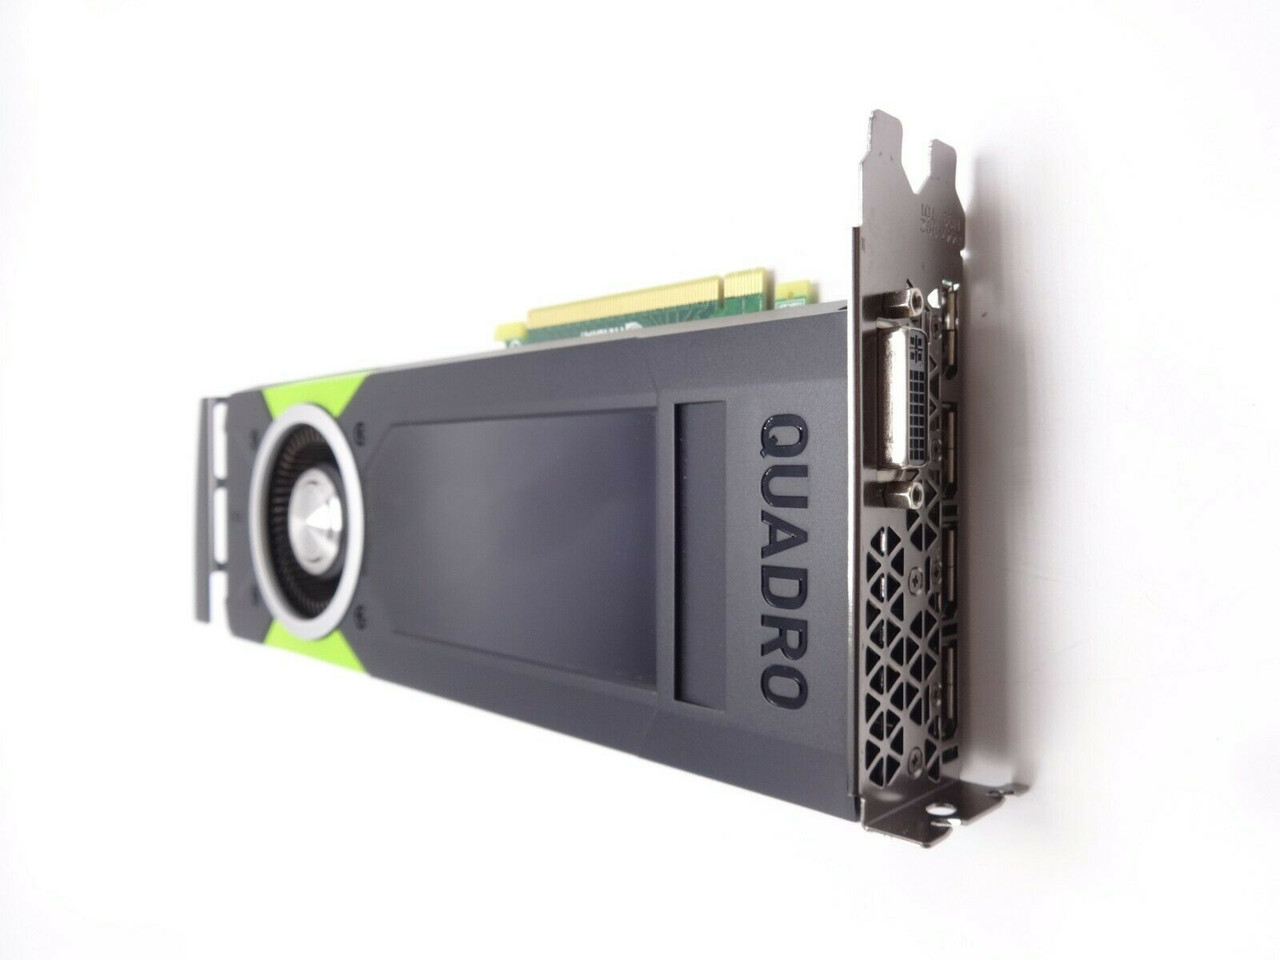 HP 861189-001 NVIDIA Quadro M5000 8GB 256Bit 4x Display 1X DVI PCI-E X16 3.0Card